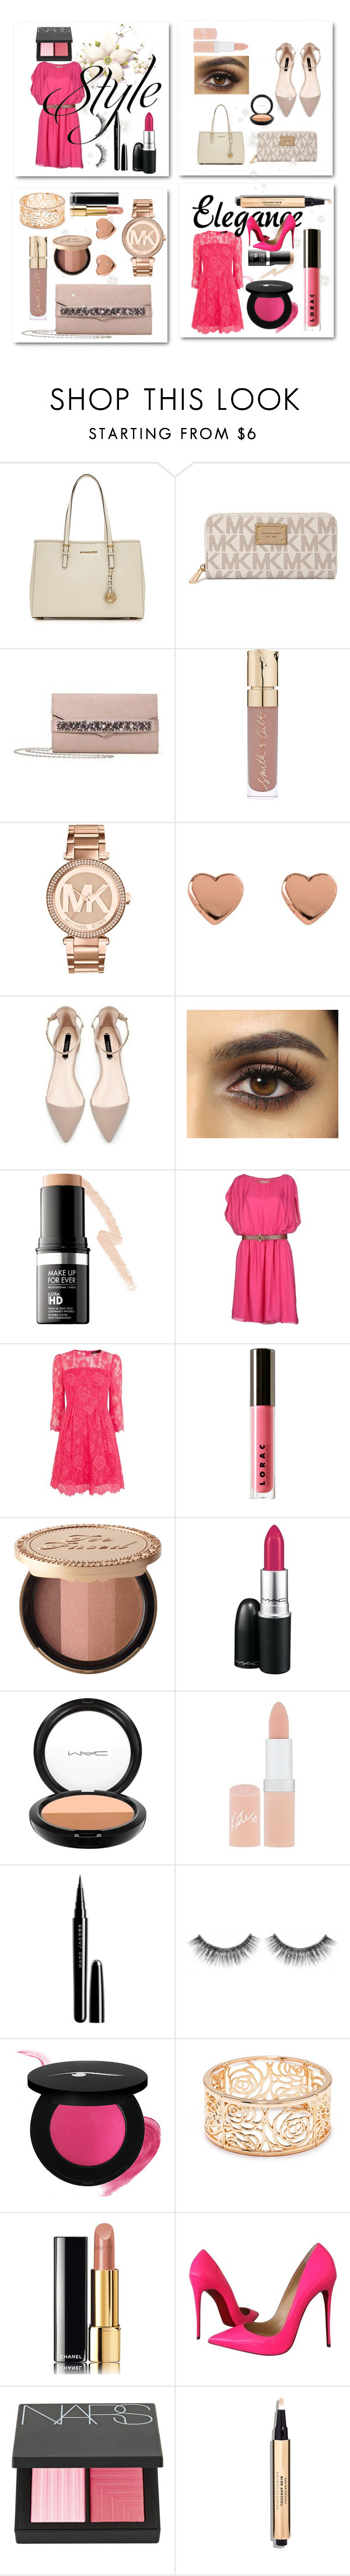 """""""nude & hot pink"""" by sweetangel29 ❤ liked on Polyvore featuring beauty, MICHAEL Michael Kors, Michael Kors, Smith & Cult, Ted Baker, MAKE UP FOR EVER, Karen Millen, LORAC, Too Faced Cosmetics and MAC Cosmetics"""